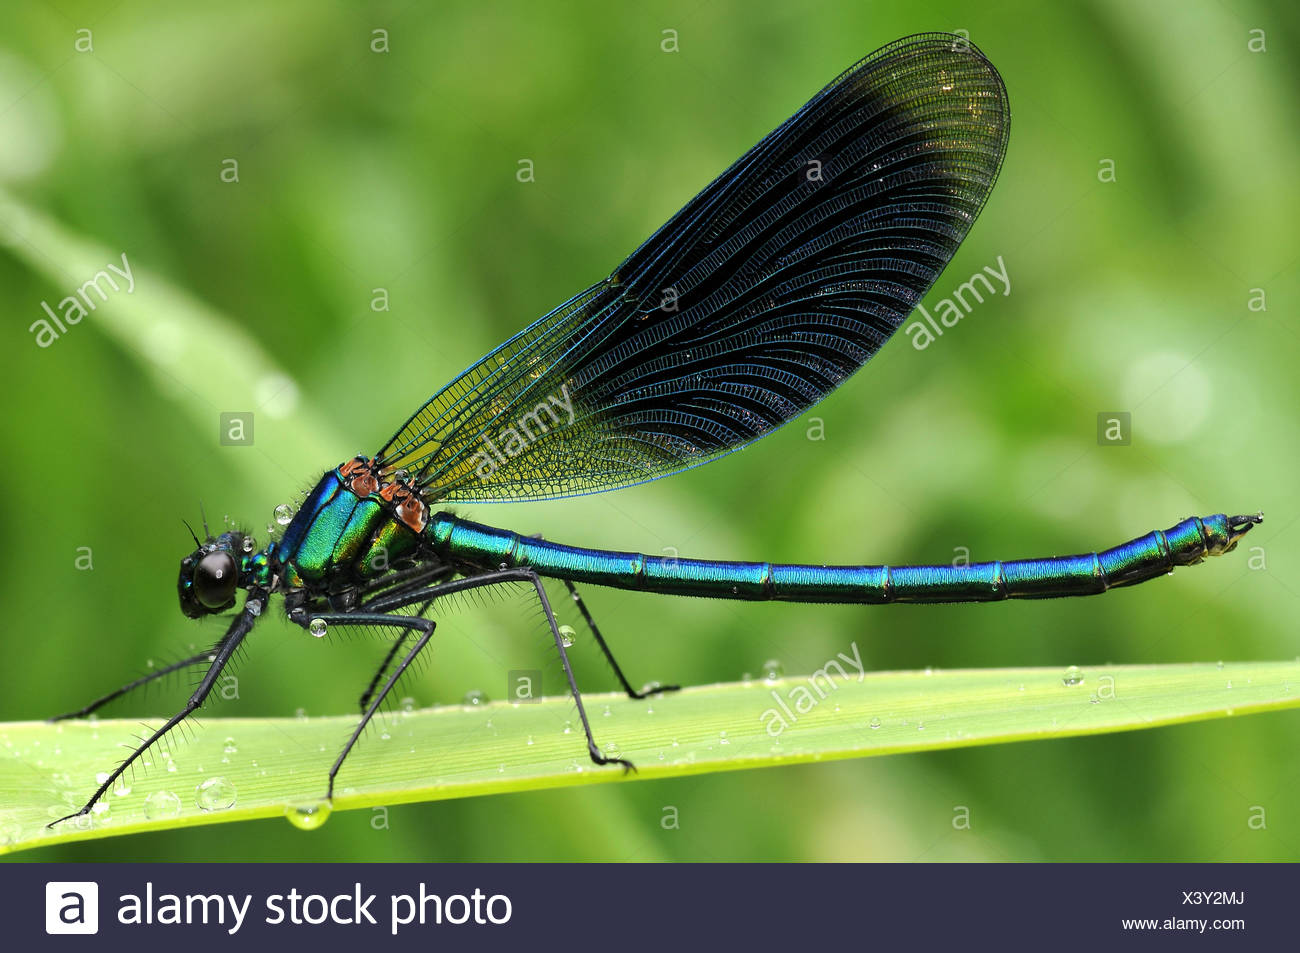 male masculine dragonfly - Stock Image